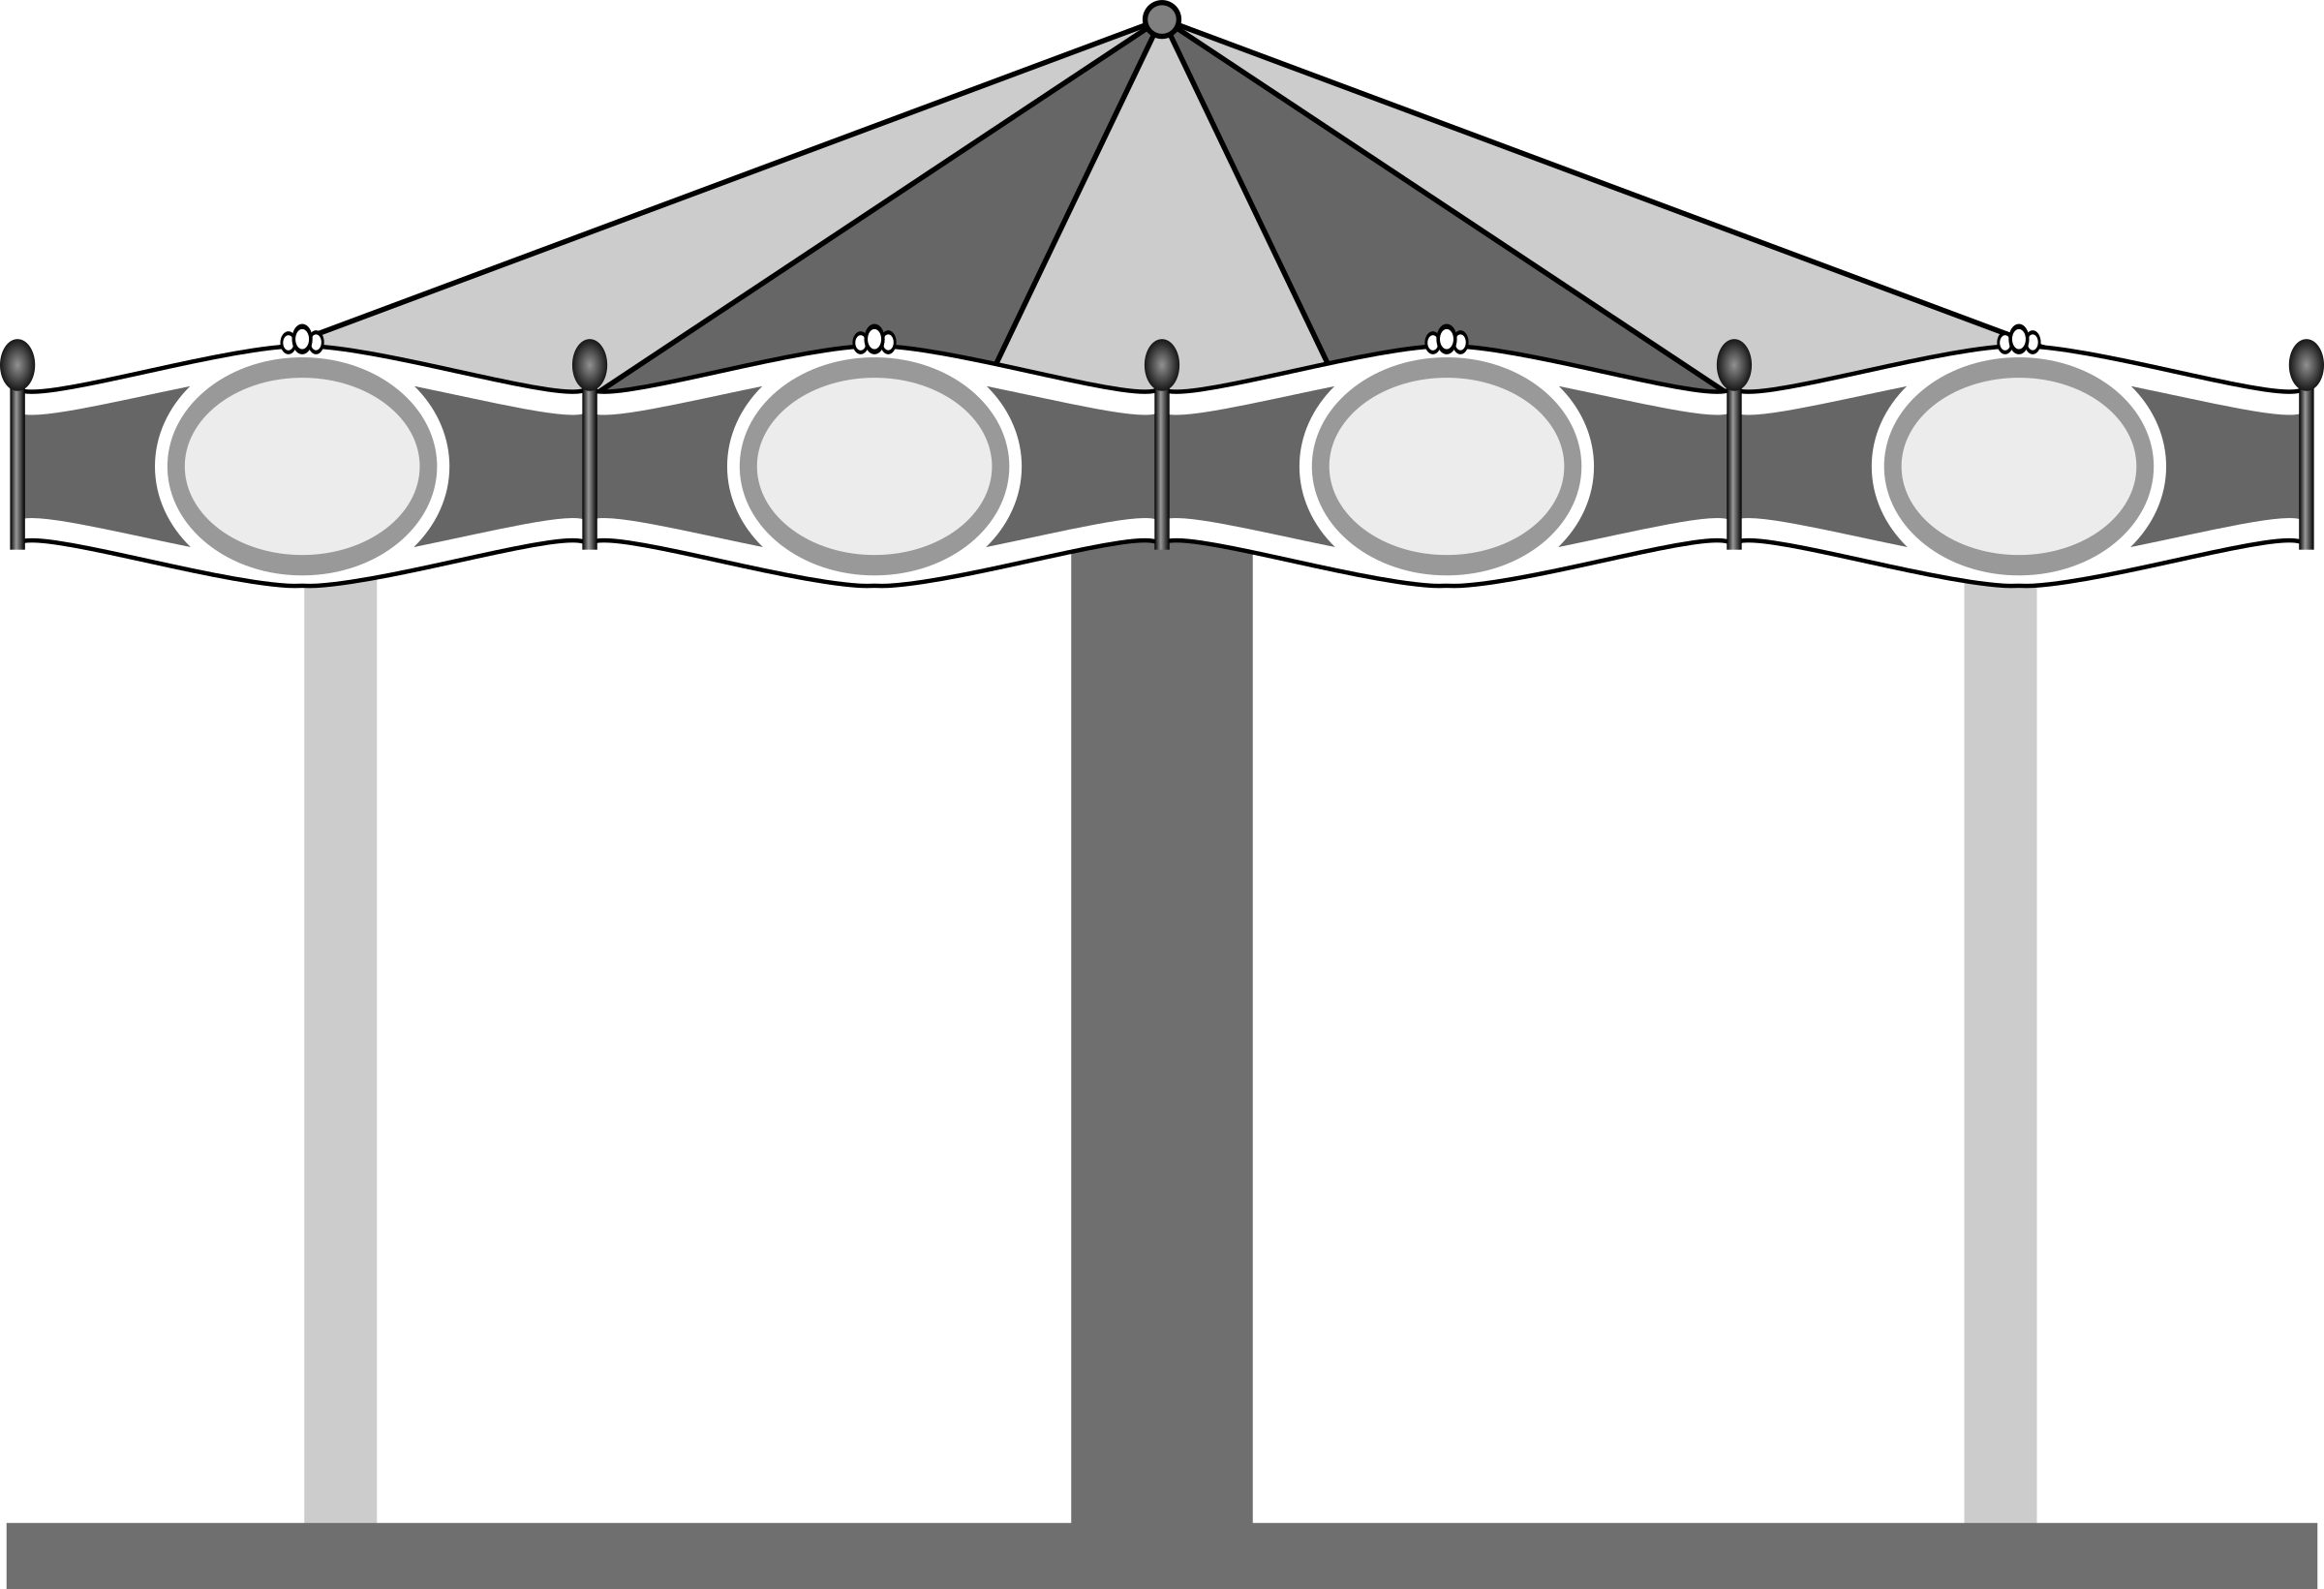 Clipart tent canopy. Carrousel big image png